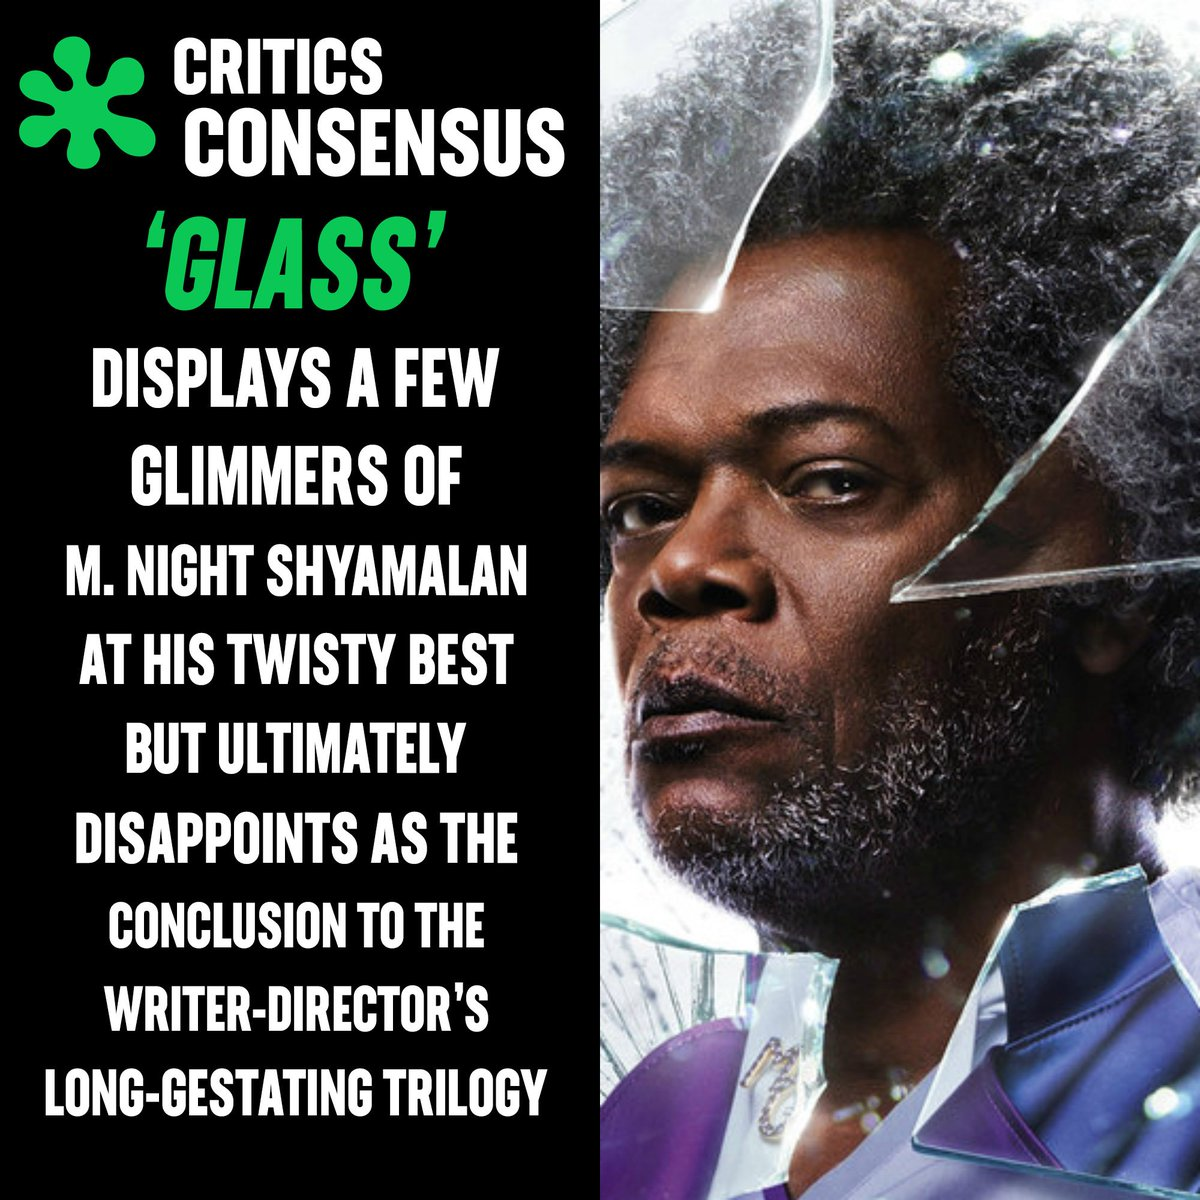 #GlassMovie is currently #Rotten at 41% on the #Tomatometer, with 61 reviews https://t.co/PZD3oGPO31